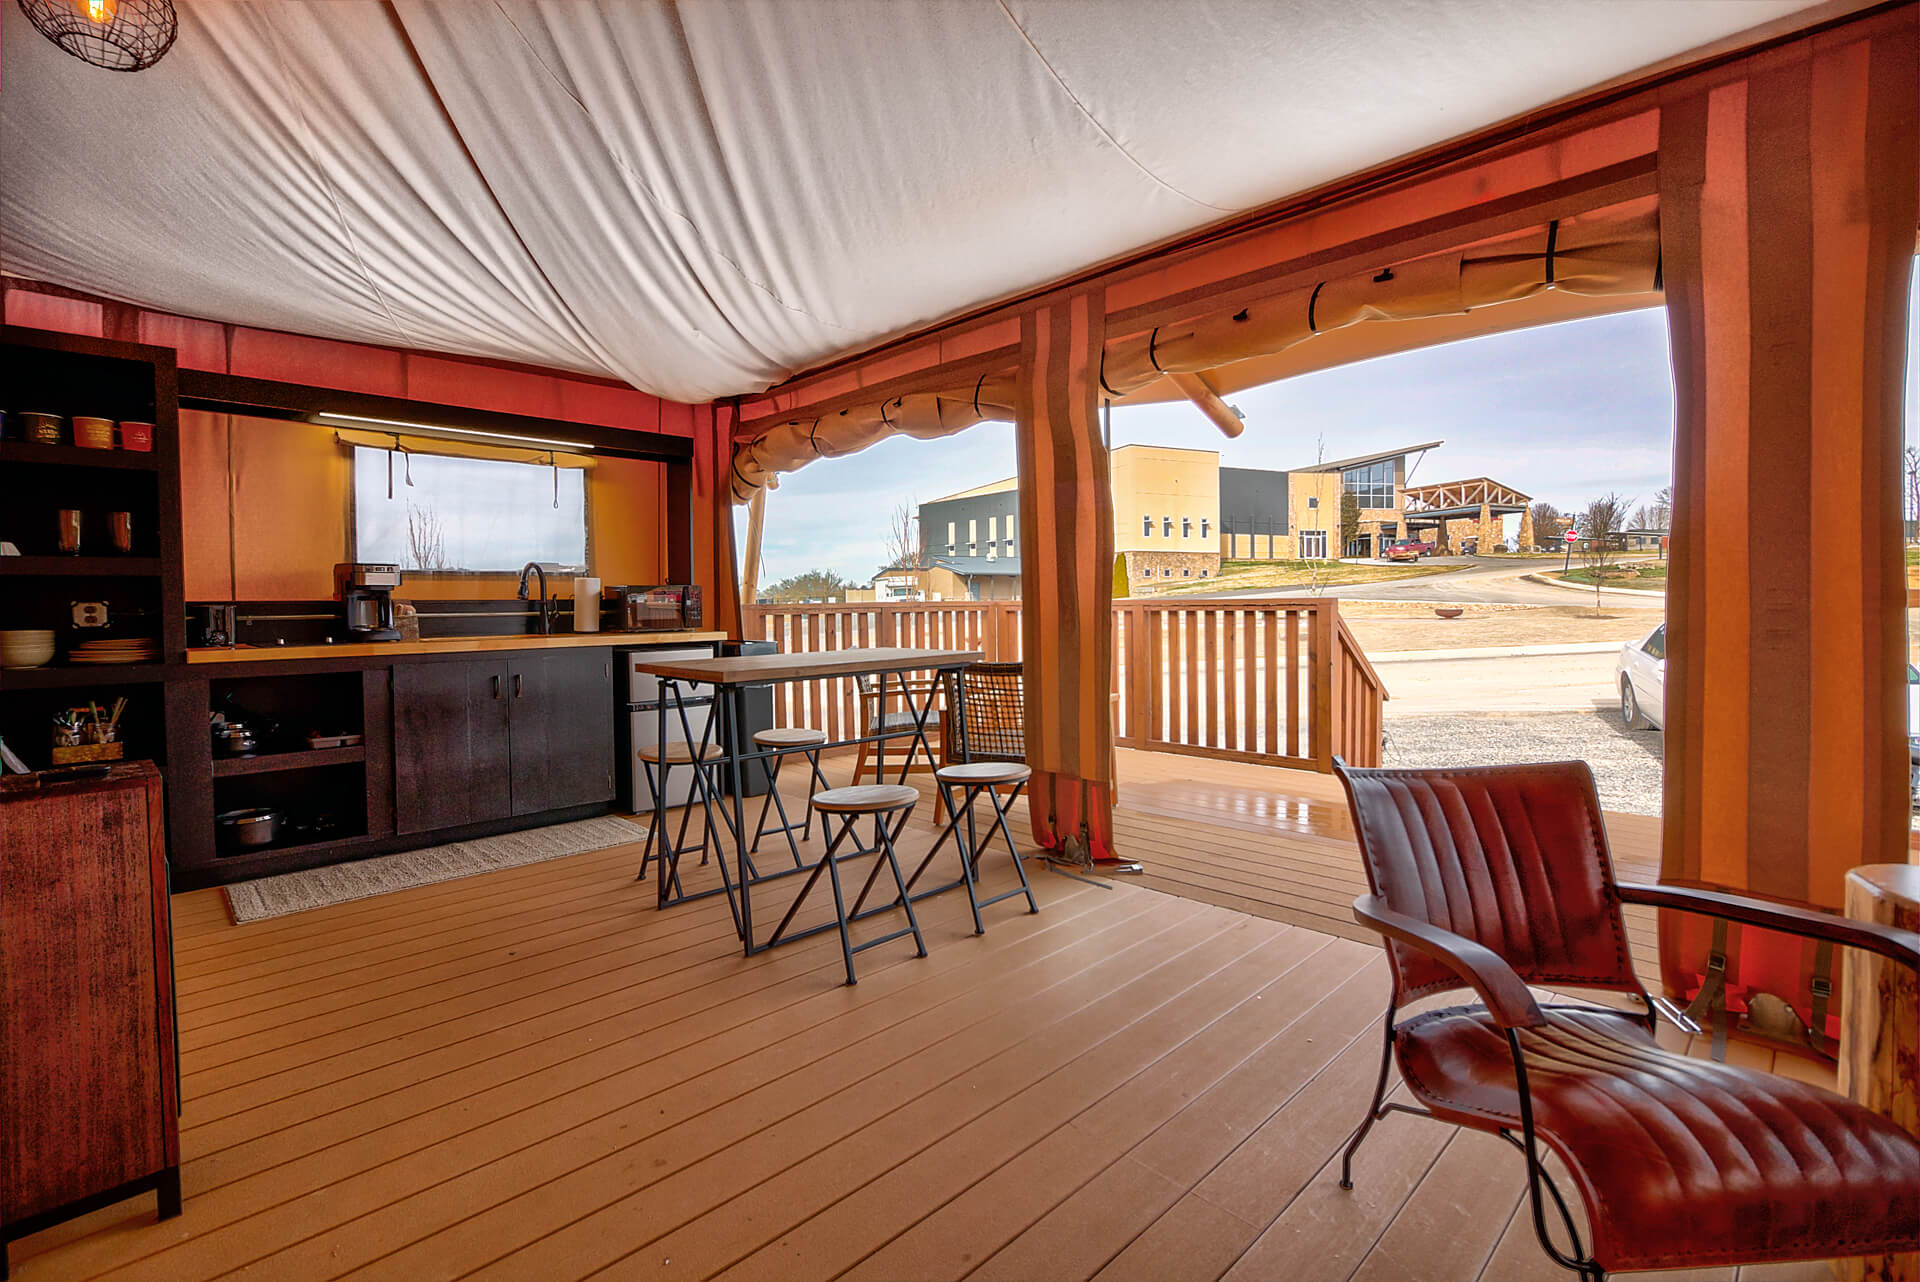 The Ridge Outdoor Resort Luxury Glamping Tent Camping